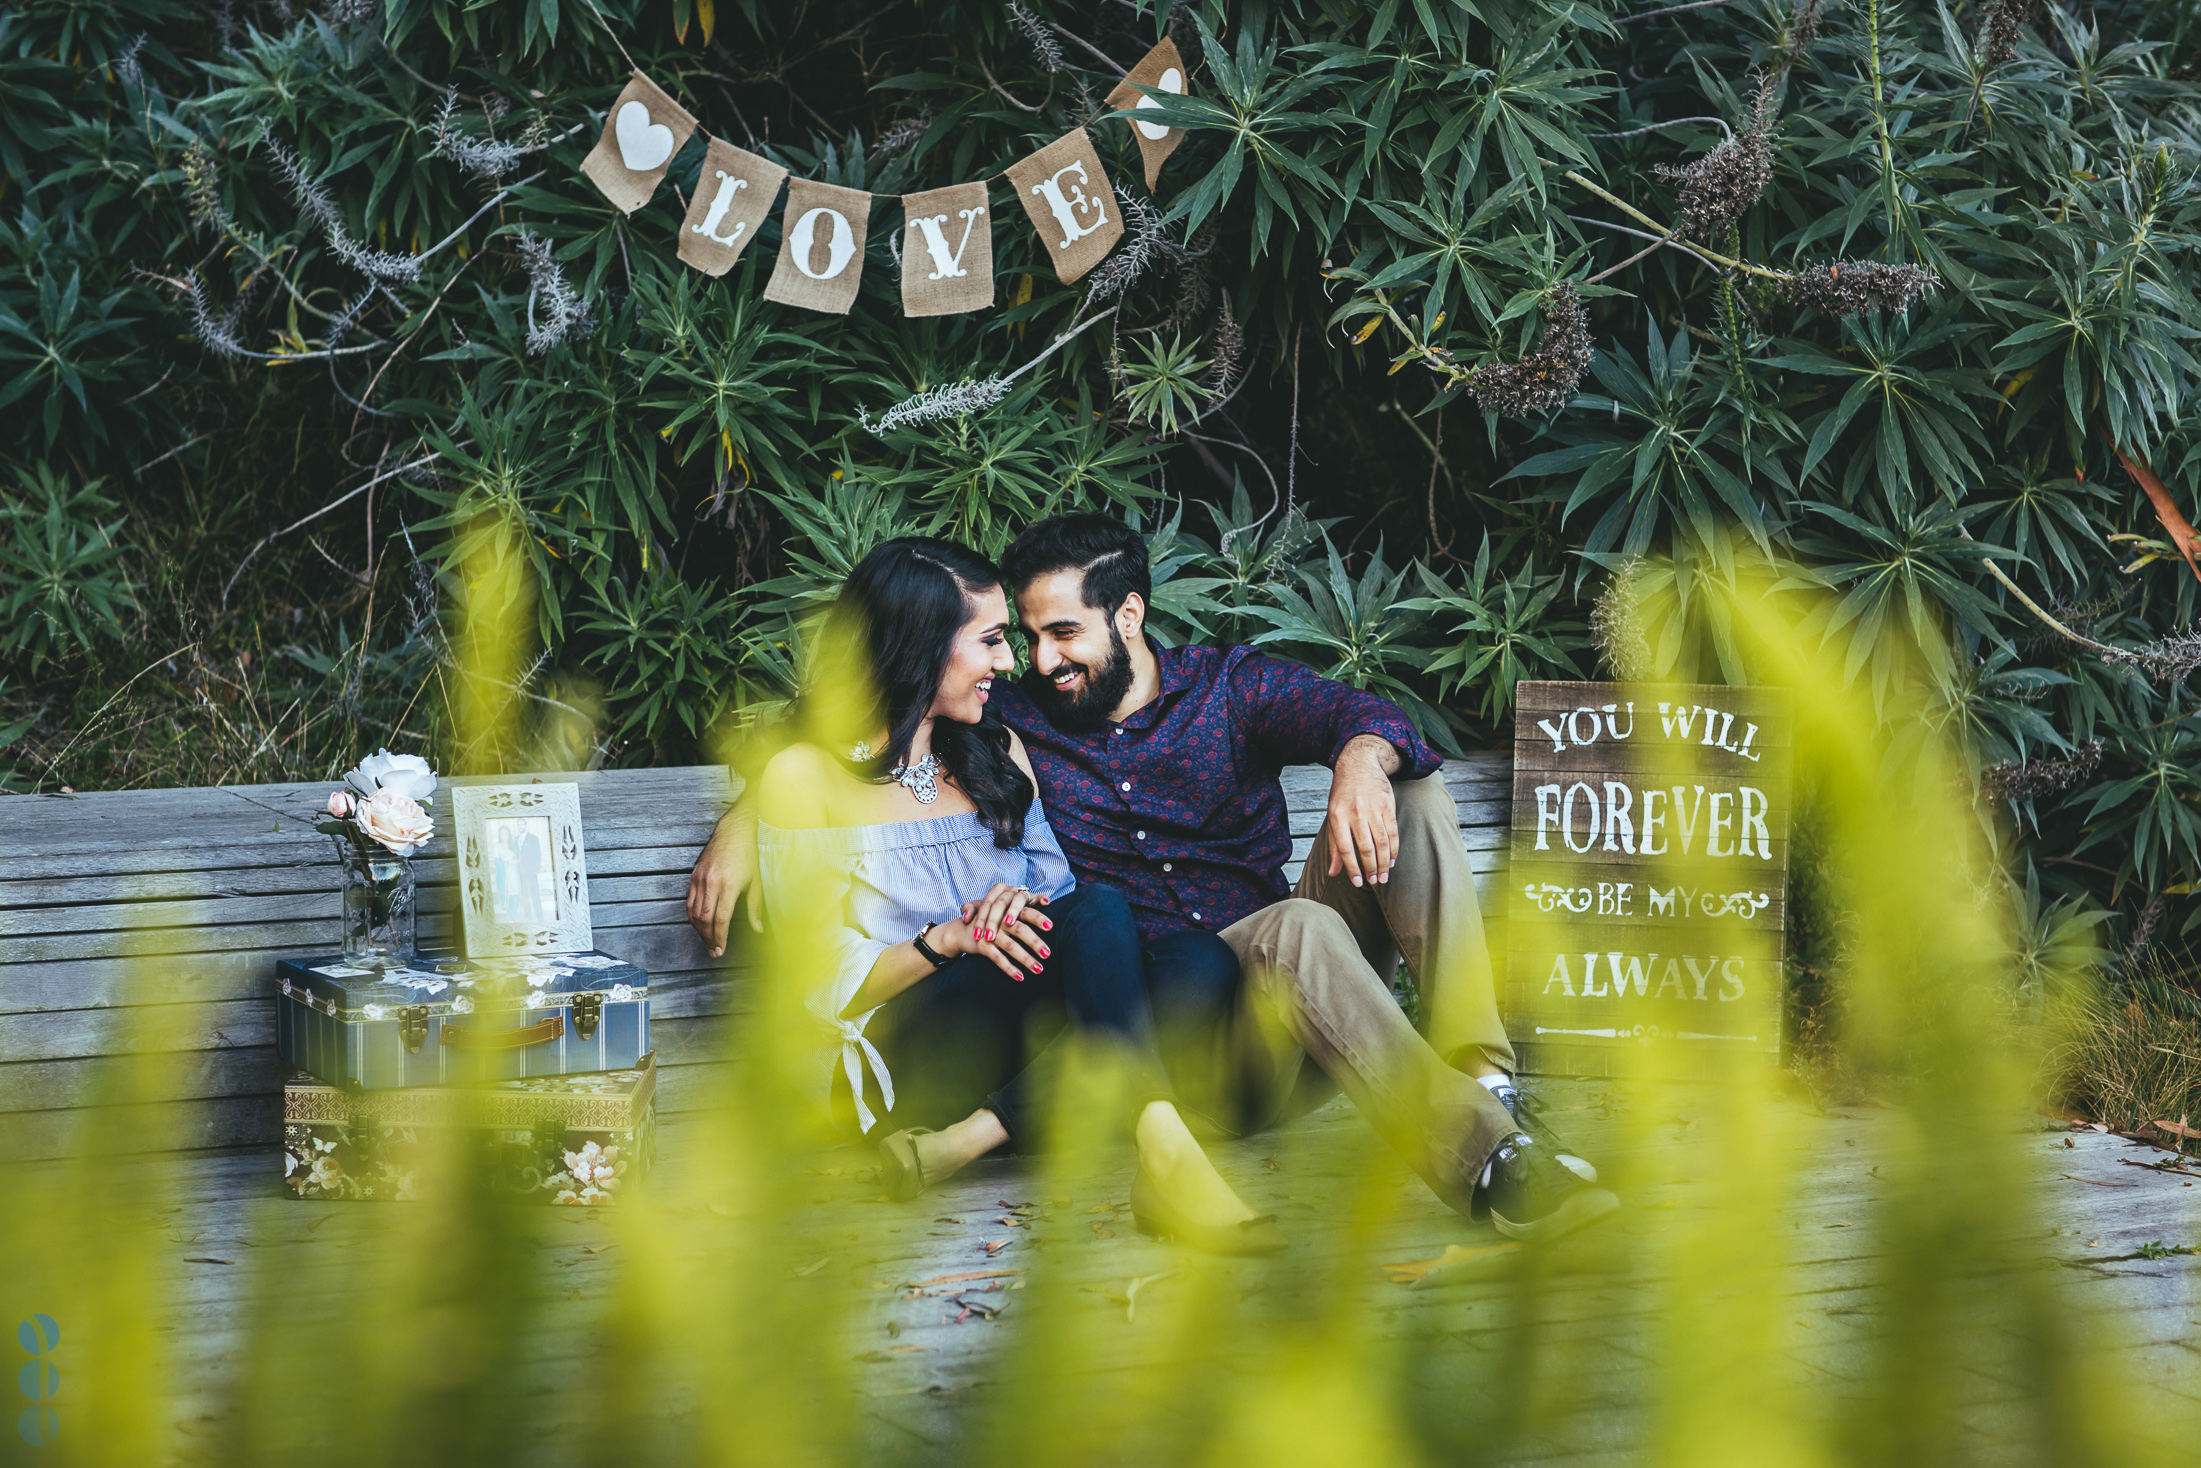 Classic Indian Engagement Photos of Pardeep & Lovepreet with a romantic setup by Aperina Studios.